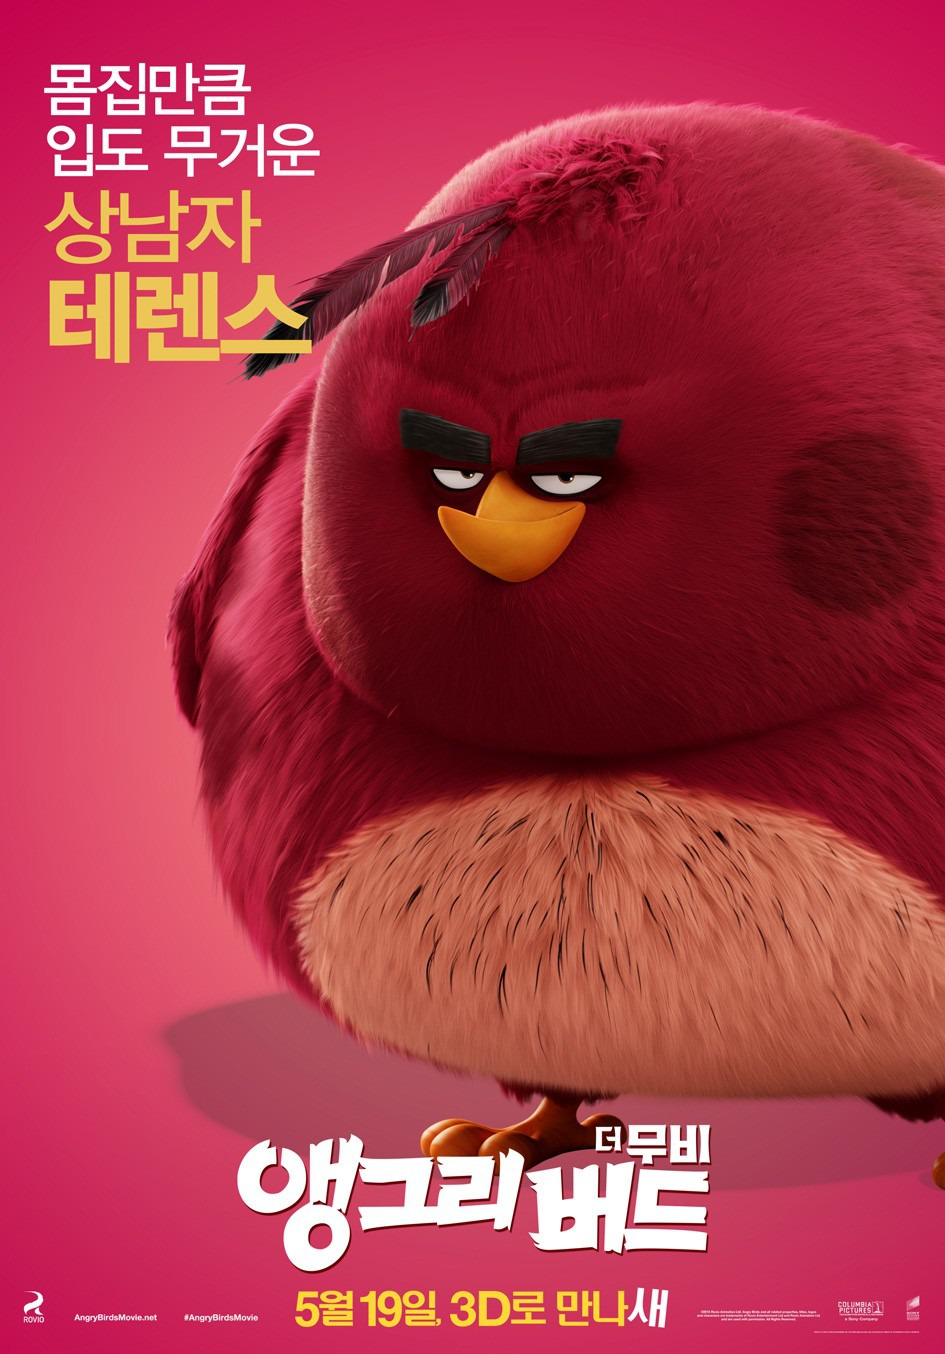 Cute Angry Bird Wallpaper The Angry Birds Movie Dvd Release Date Redbox Netflix